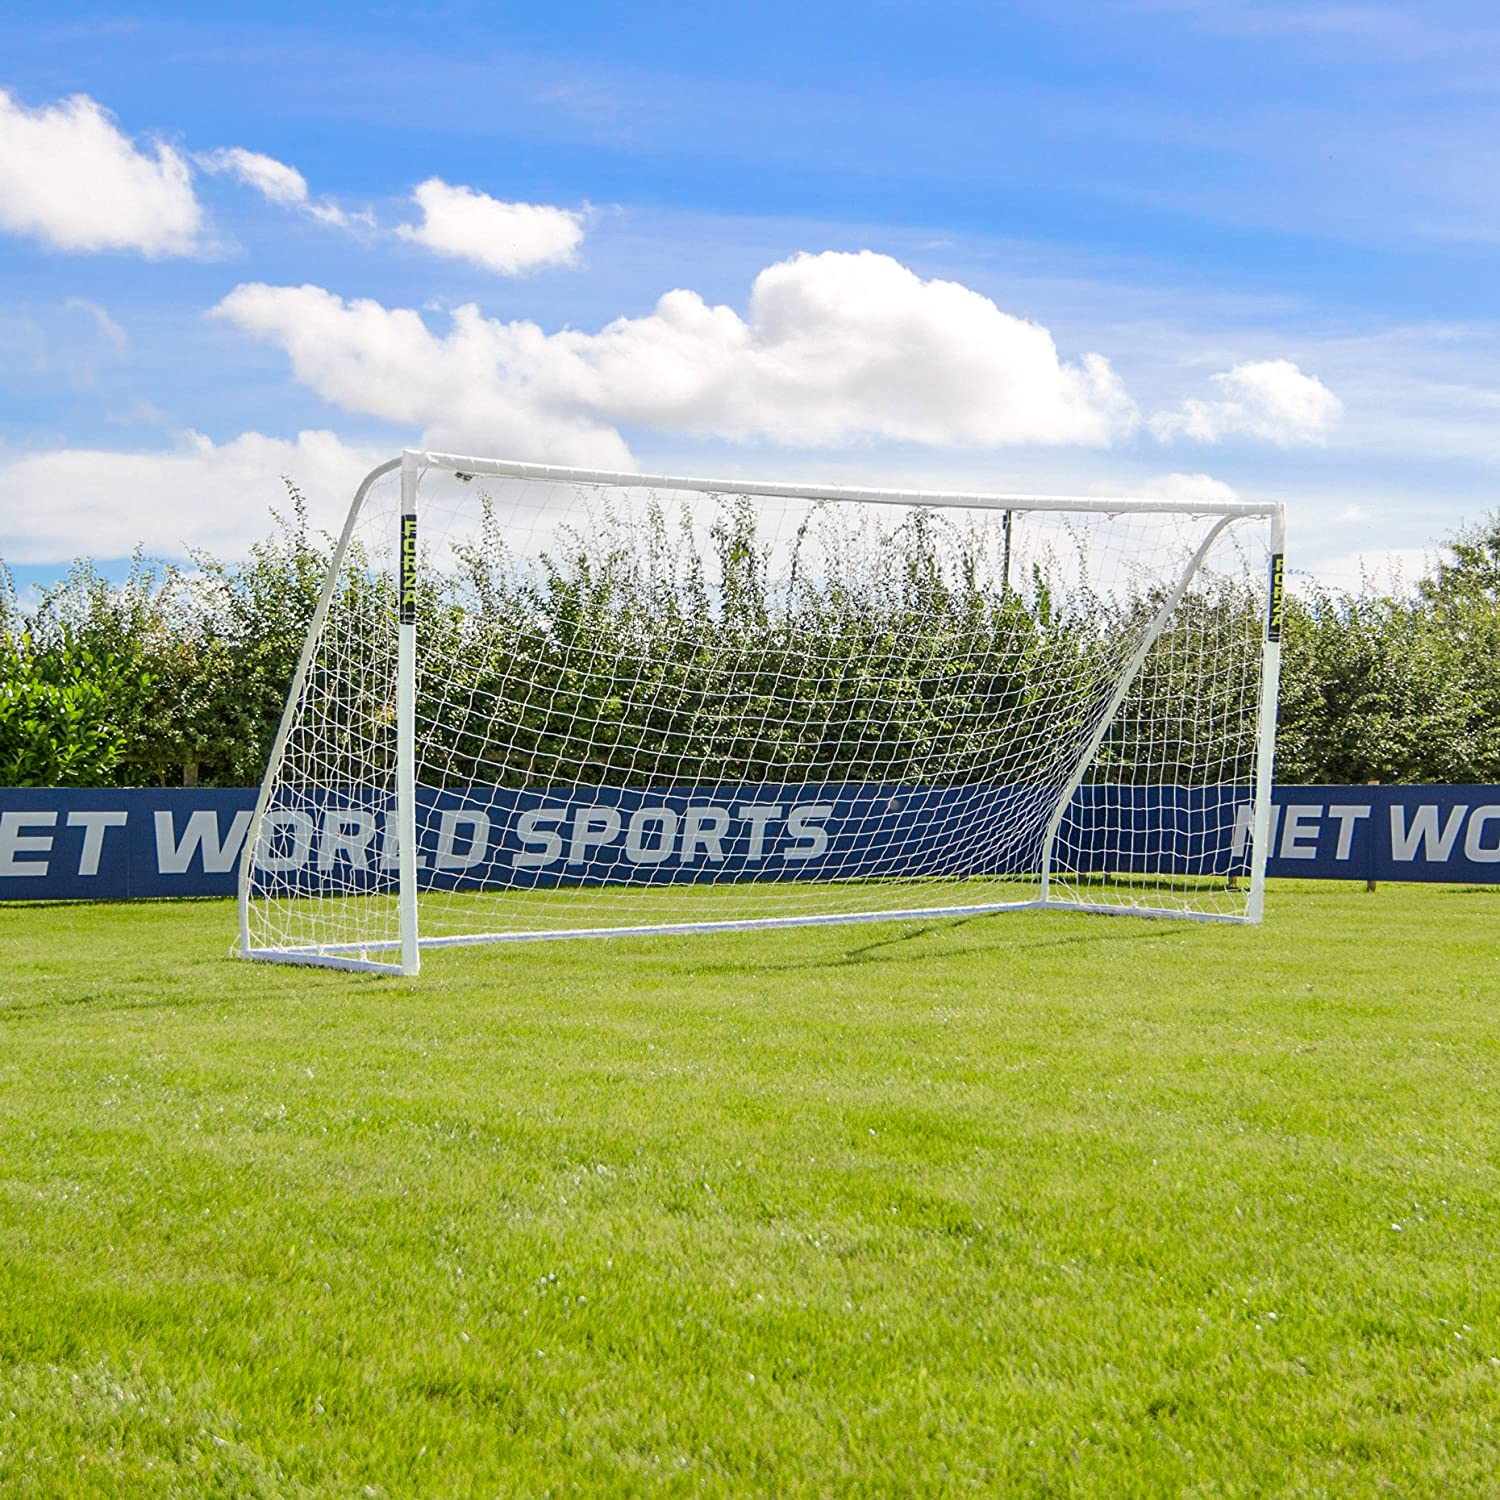 Forza 16ft x 7ft Soccer Goal & Net - The Largest Portable Soccer Goal Available! [Net World Sports]